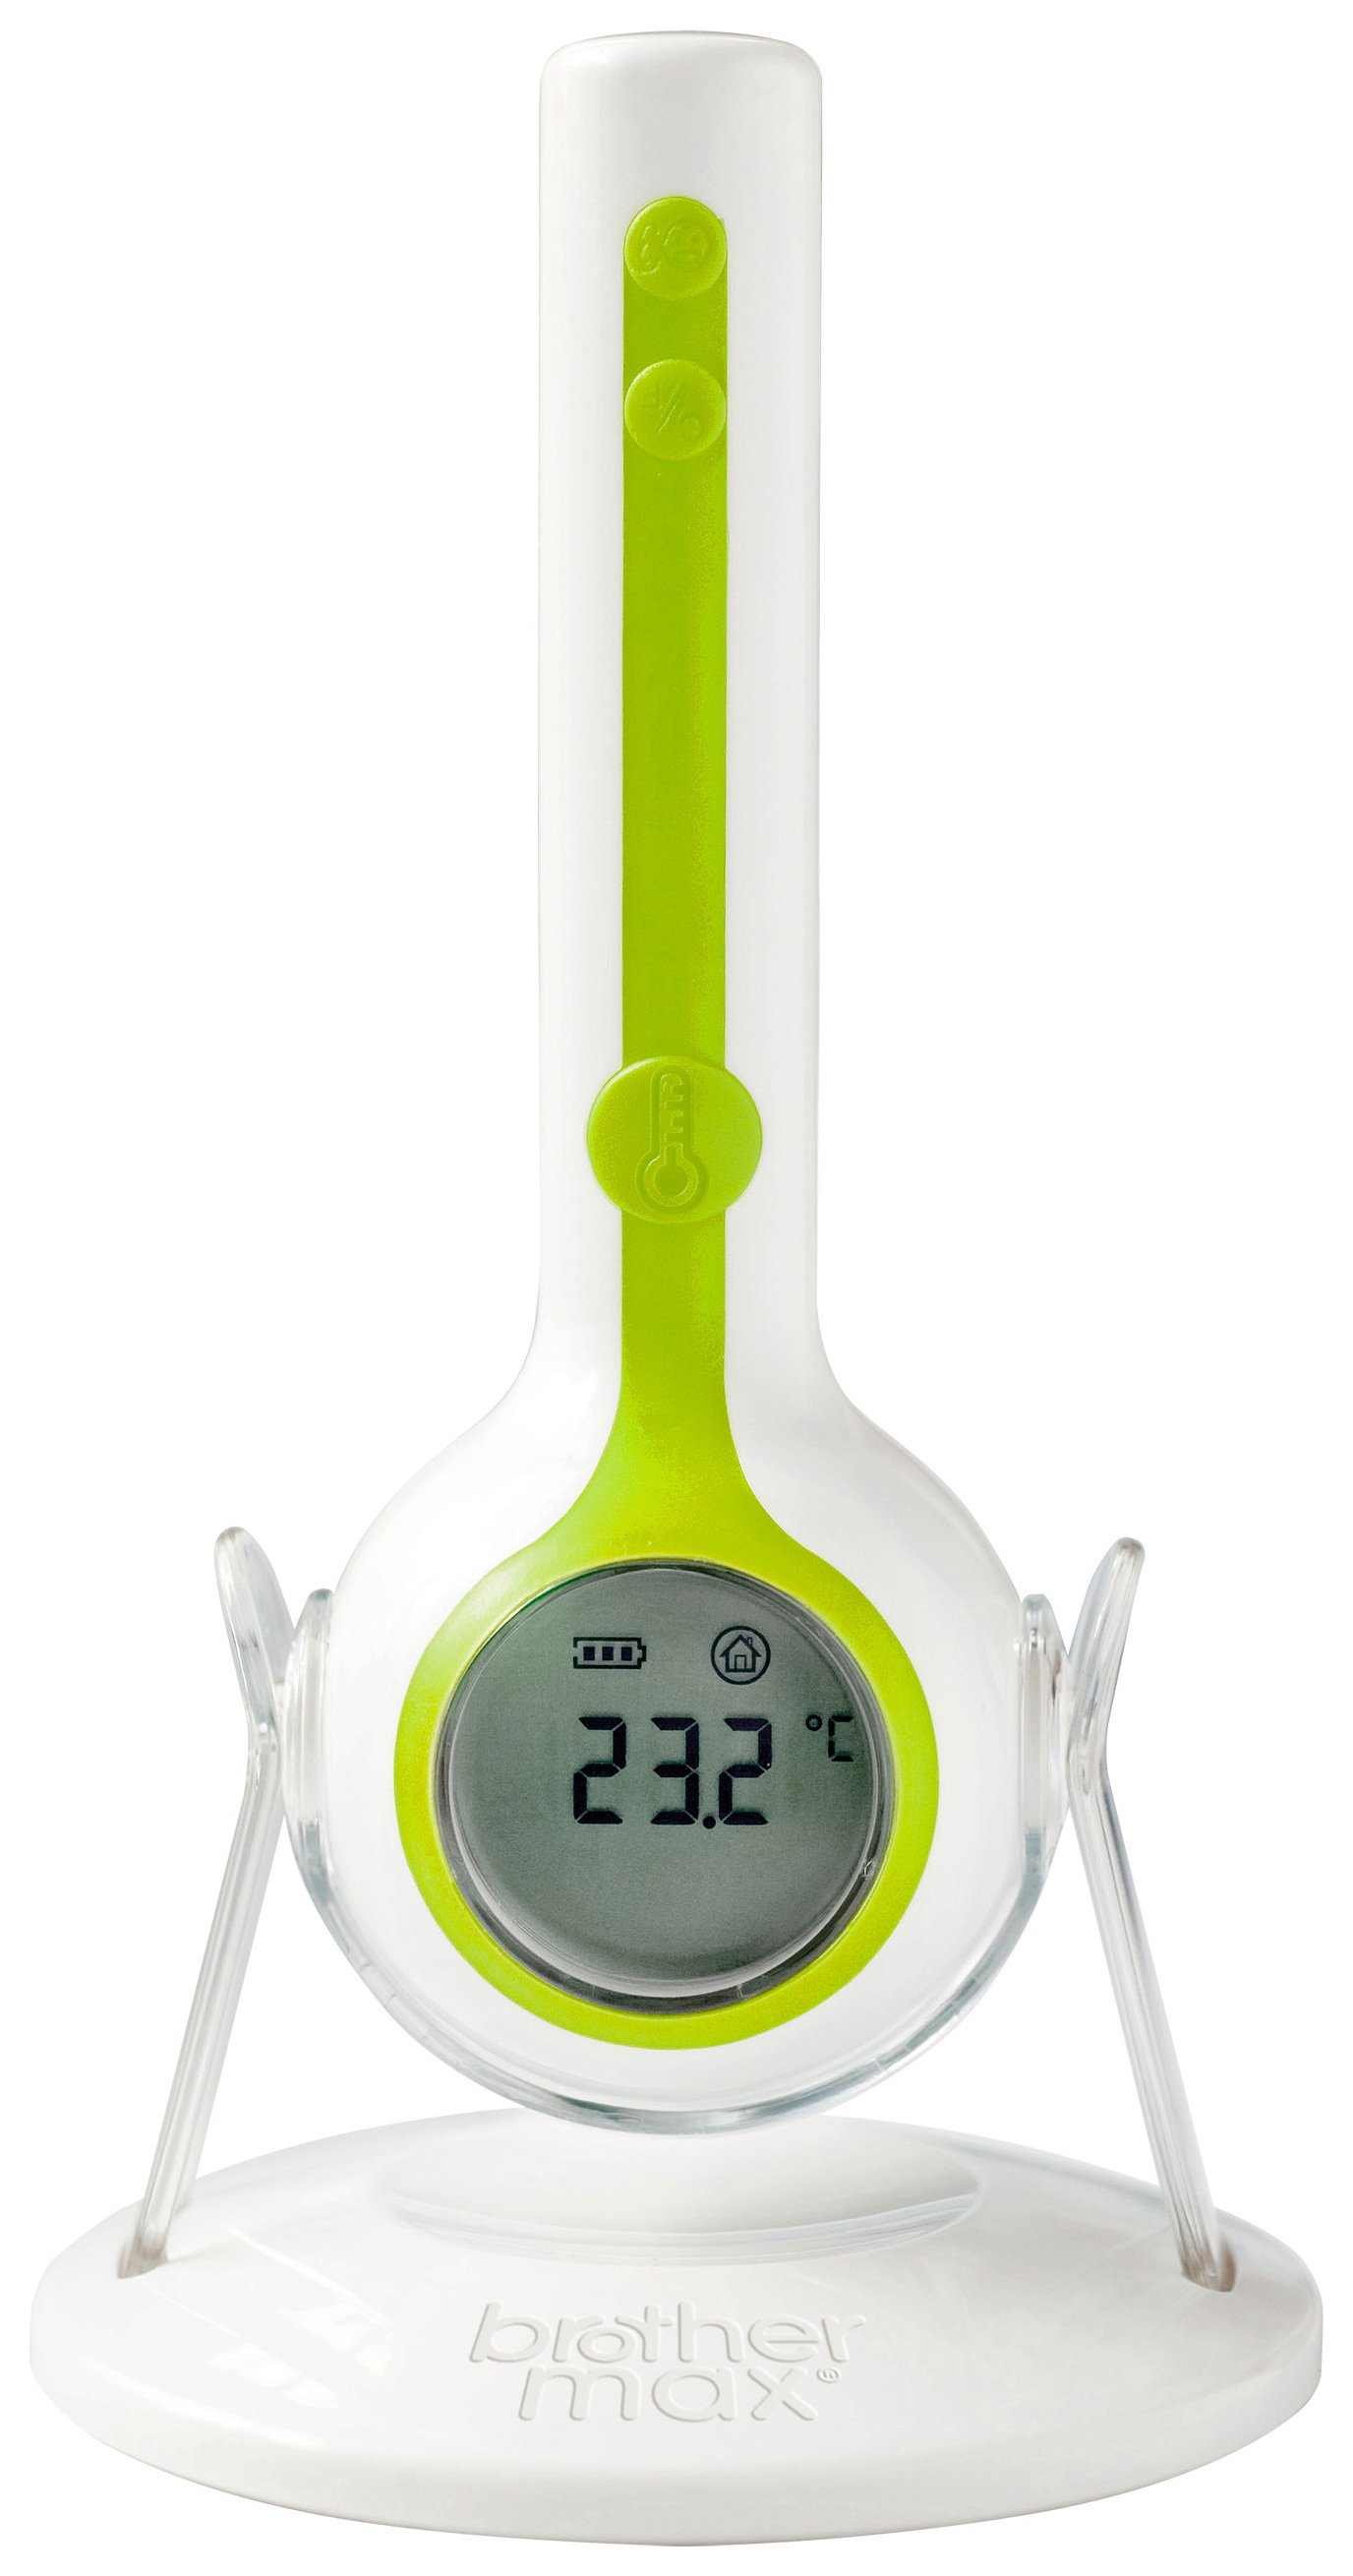 Image of Brother Max - One Touch 3 in 1 Digital Thermometer